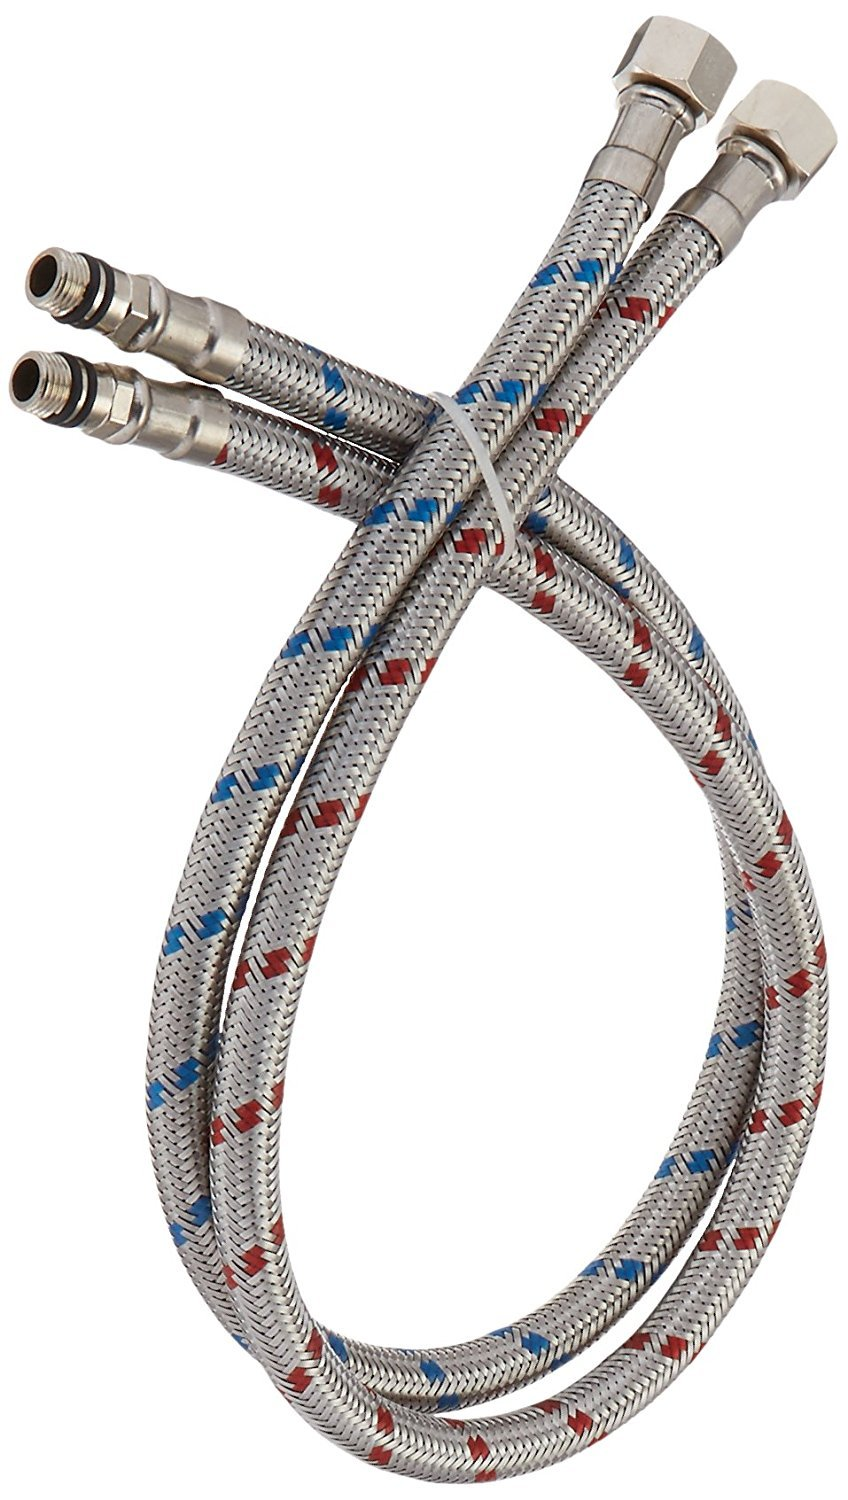 BWE 24-Inch Long Faucet Connector Braided Stainless Steel Supply ...